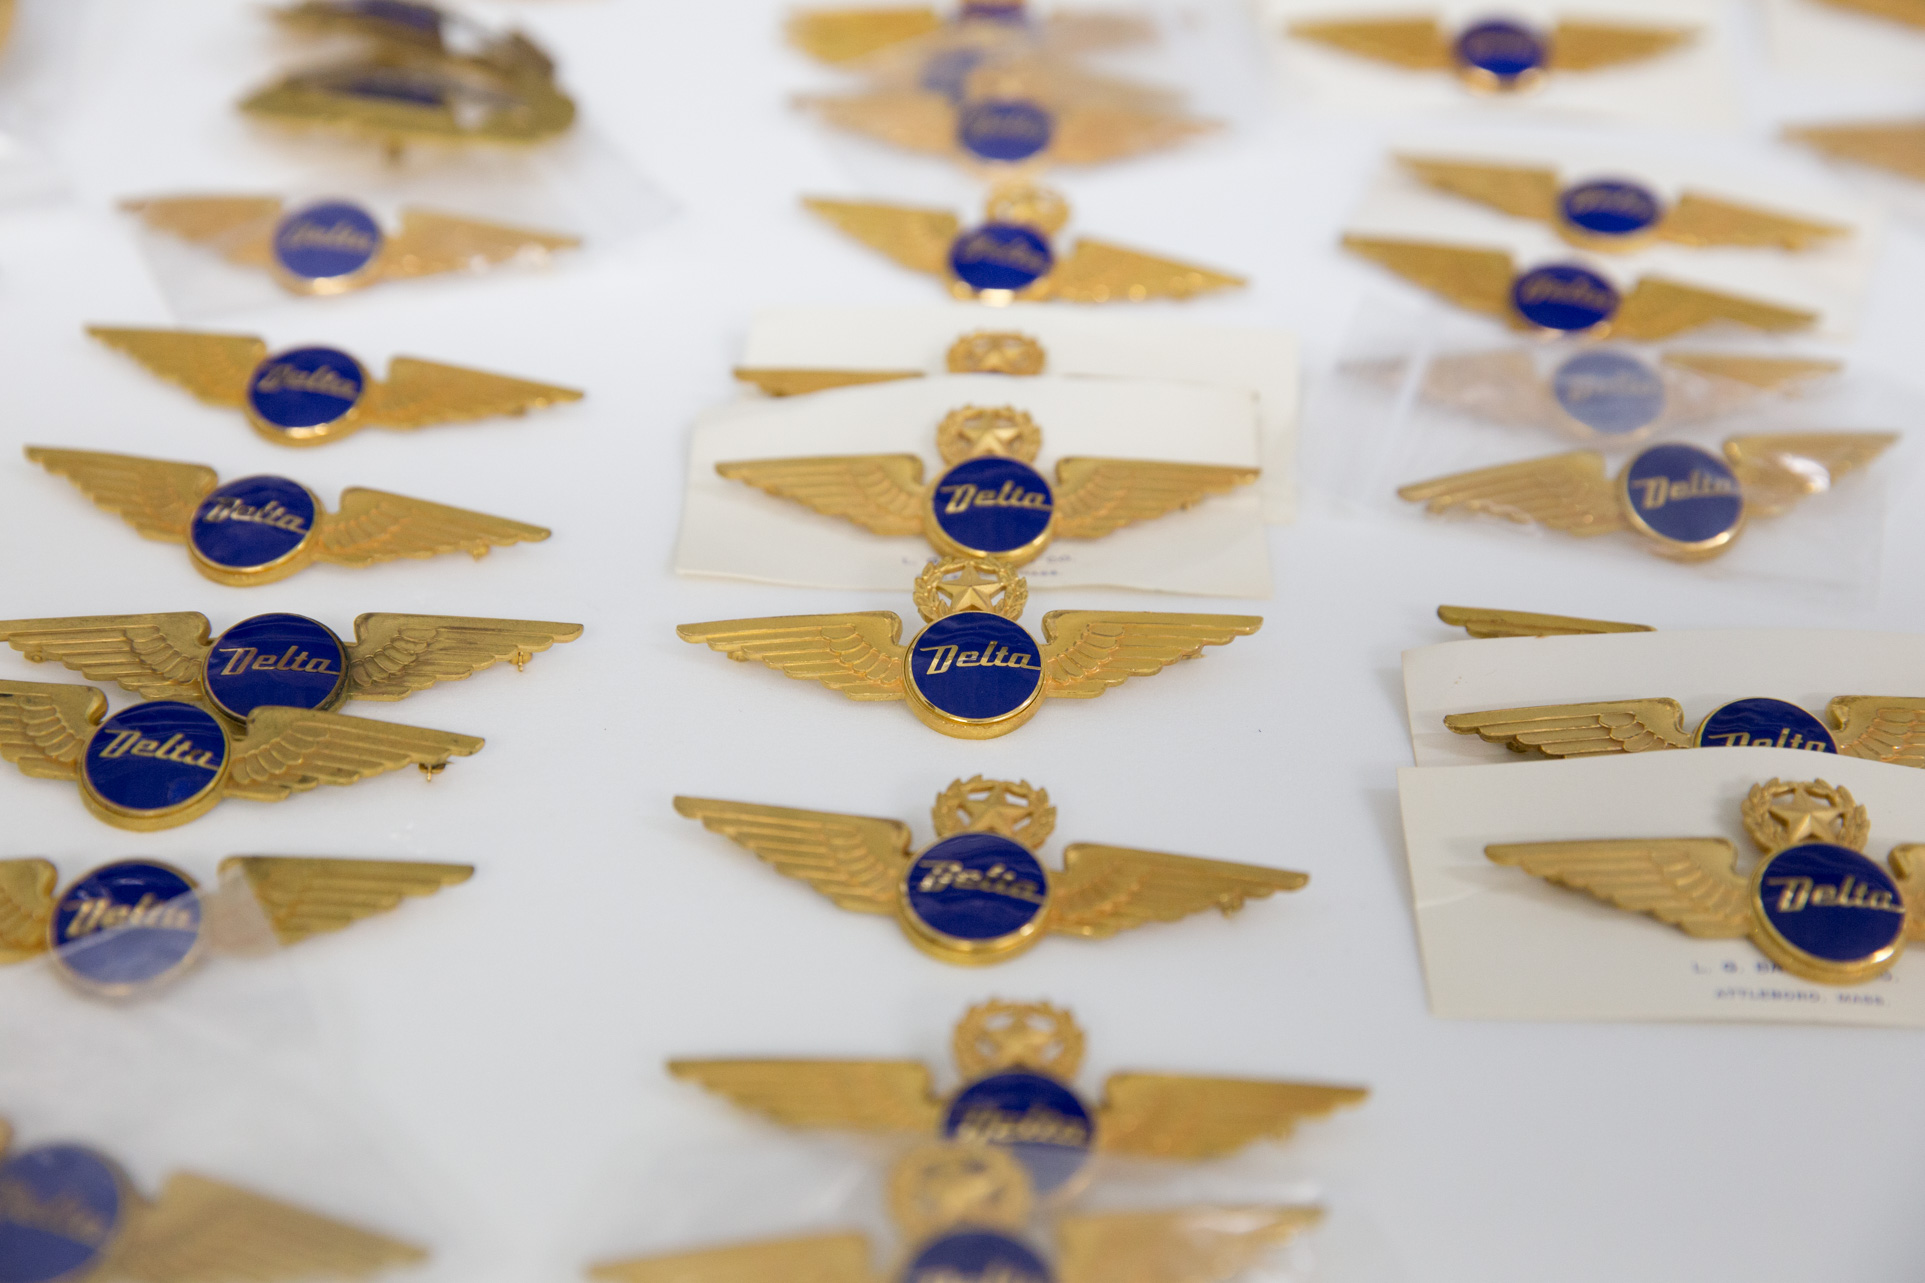 Delta wings stored in drawers at corporate museum in Atlanta